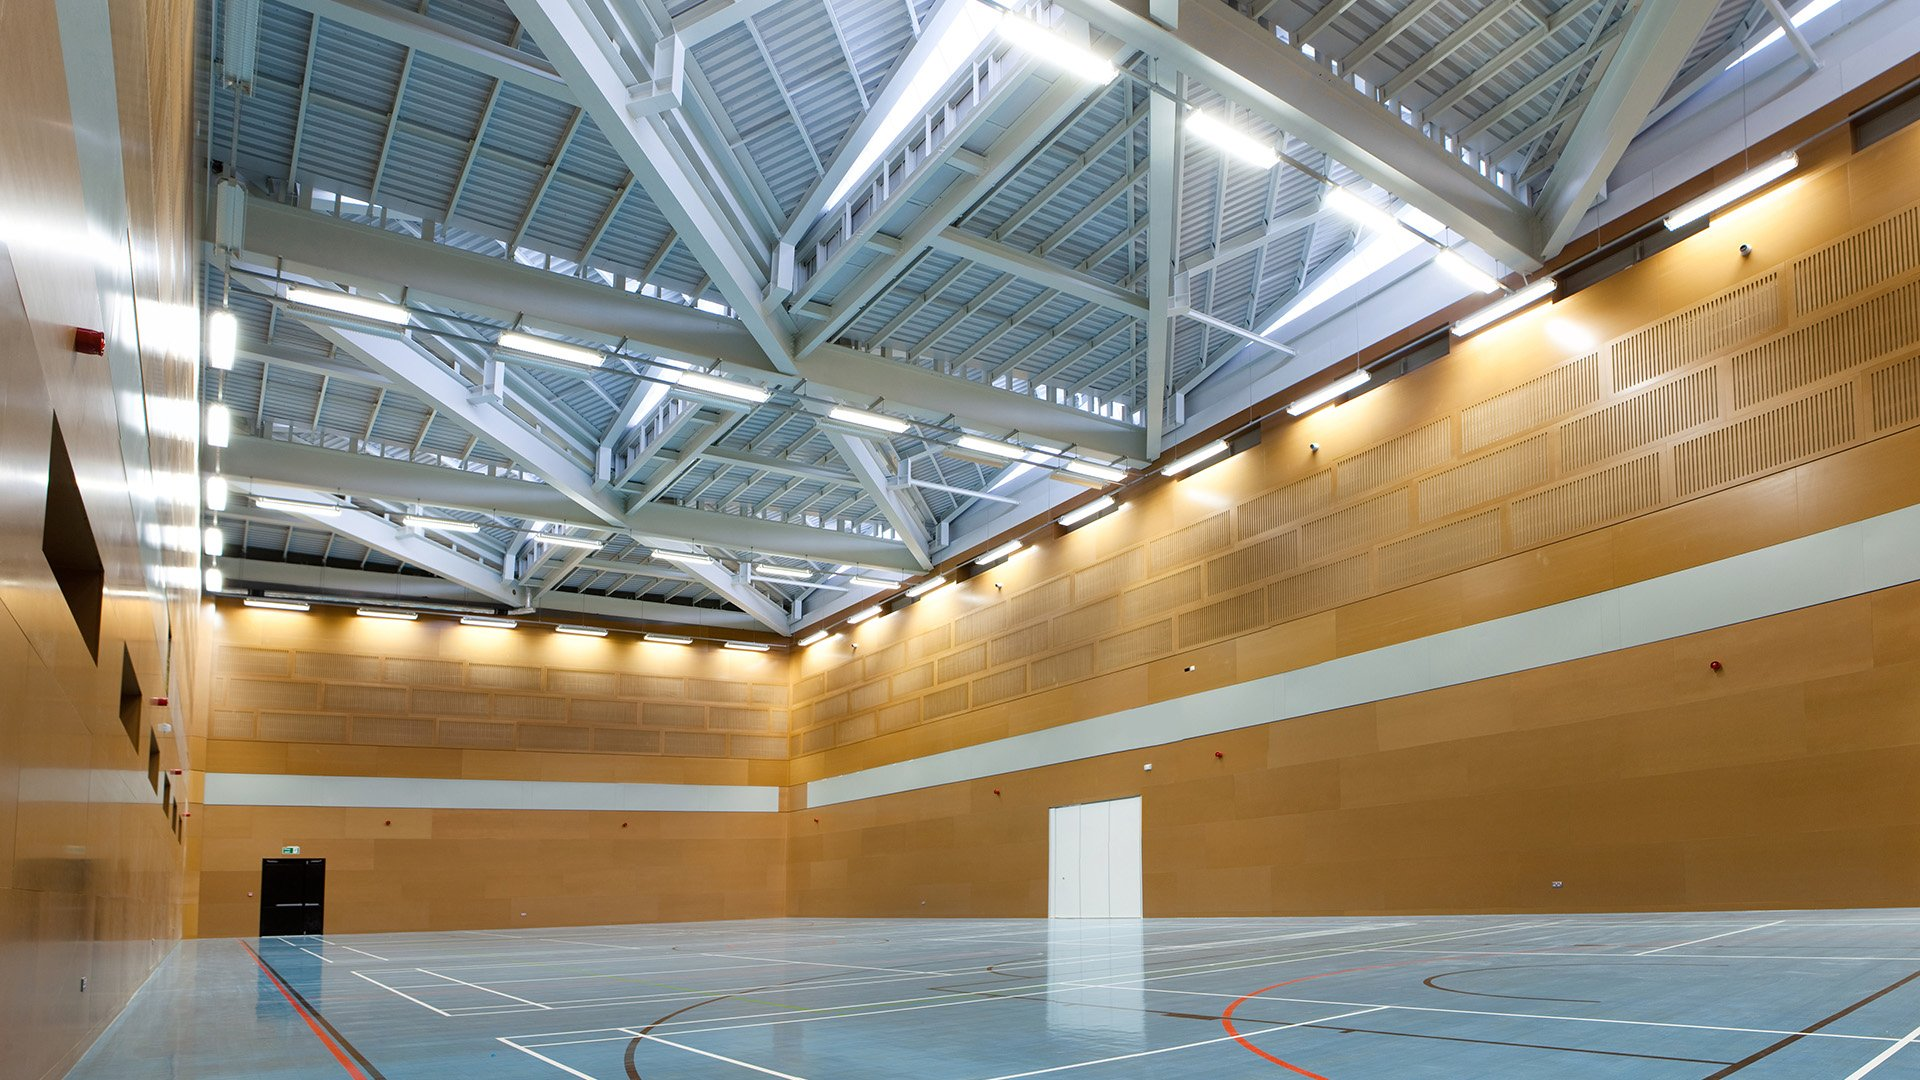 Sport Arena lighting